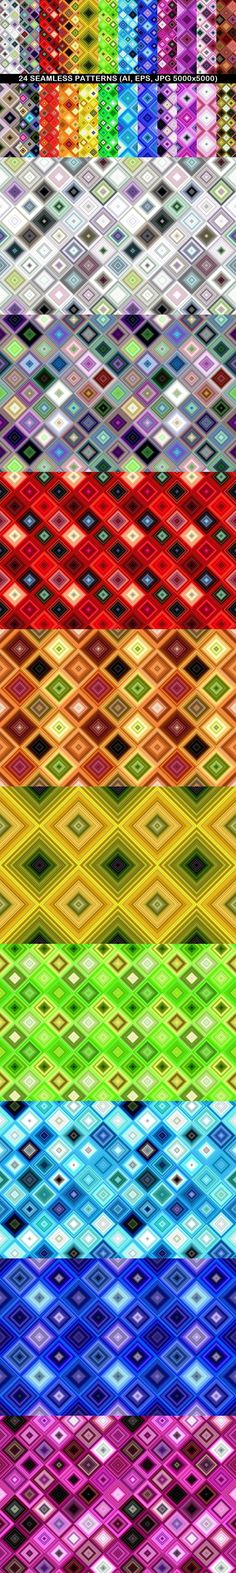 24 Seamless Patterns #PremiumBackgrounds #AbstractGraphics #GeometricalPattern #BackgroundCollection #GeometricDesign #BackgroundGraphic #PremiumVectorGraphicDesign #BackgroundDesign #PremiumVector #GeometricBackgrounds #backdrop #geometry #CheapVectorPatterns #PremiumVectorPatternDesign #PatternSale #abstract #vector #CheapBackground #boho Geometric Patterns, Graphic Patterns, Graphic Design, Vector Background, Background Patterns, Vector Pattern, Pattern Design, Abstract Backgrounds, Colorful Backgrounds